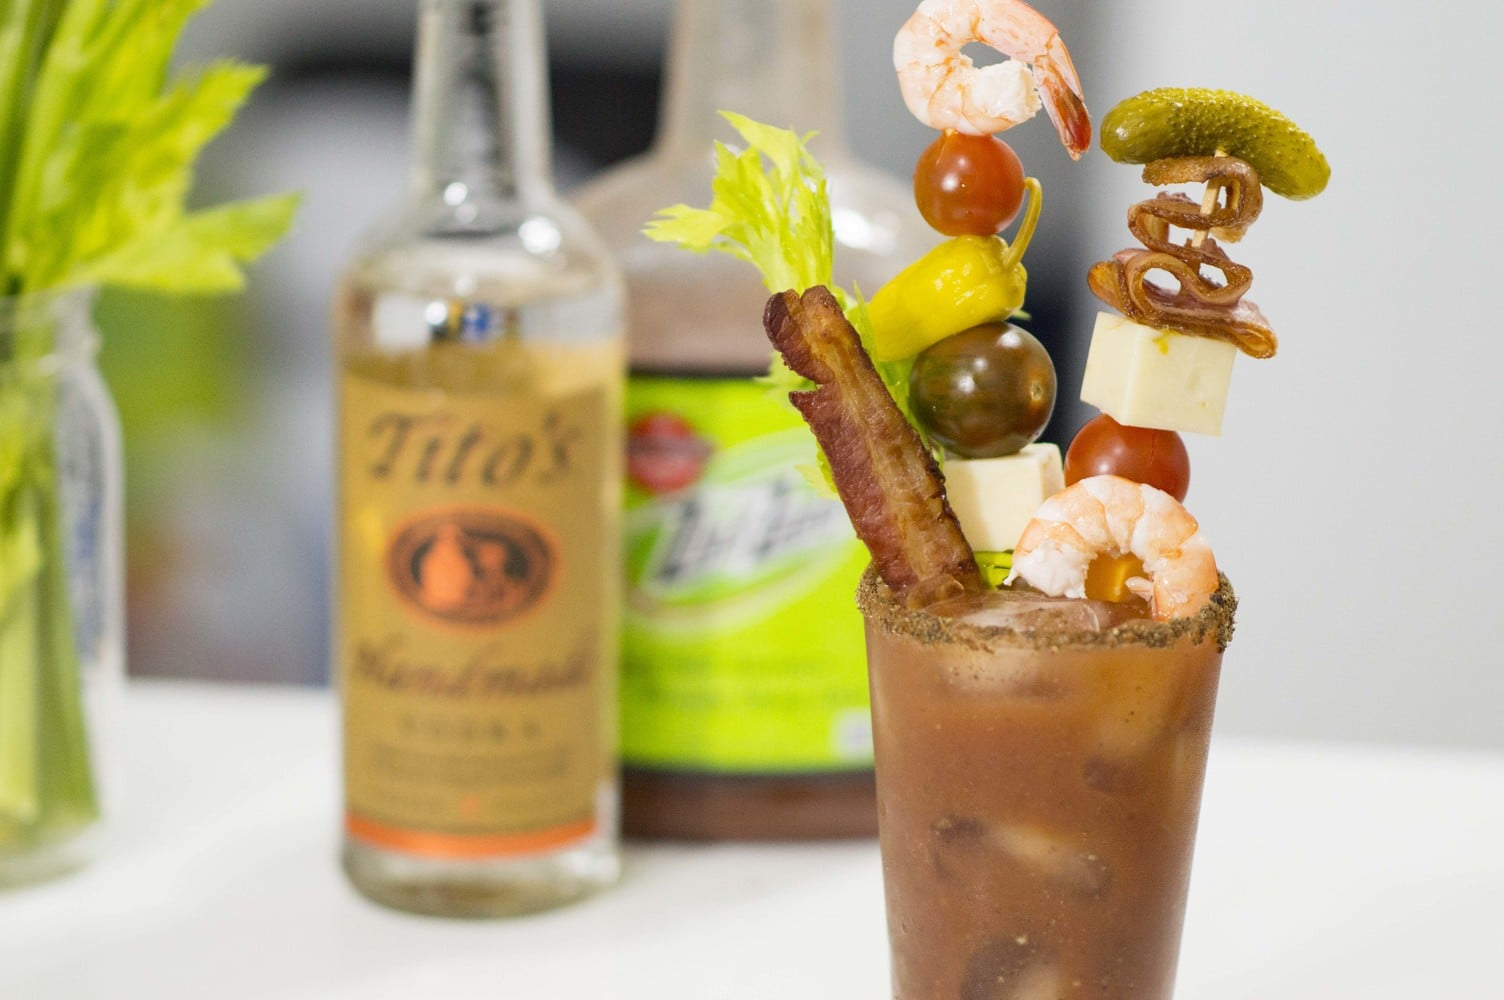 The Loaded Bloody Mary garnished and ready to serve